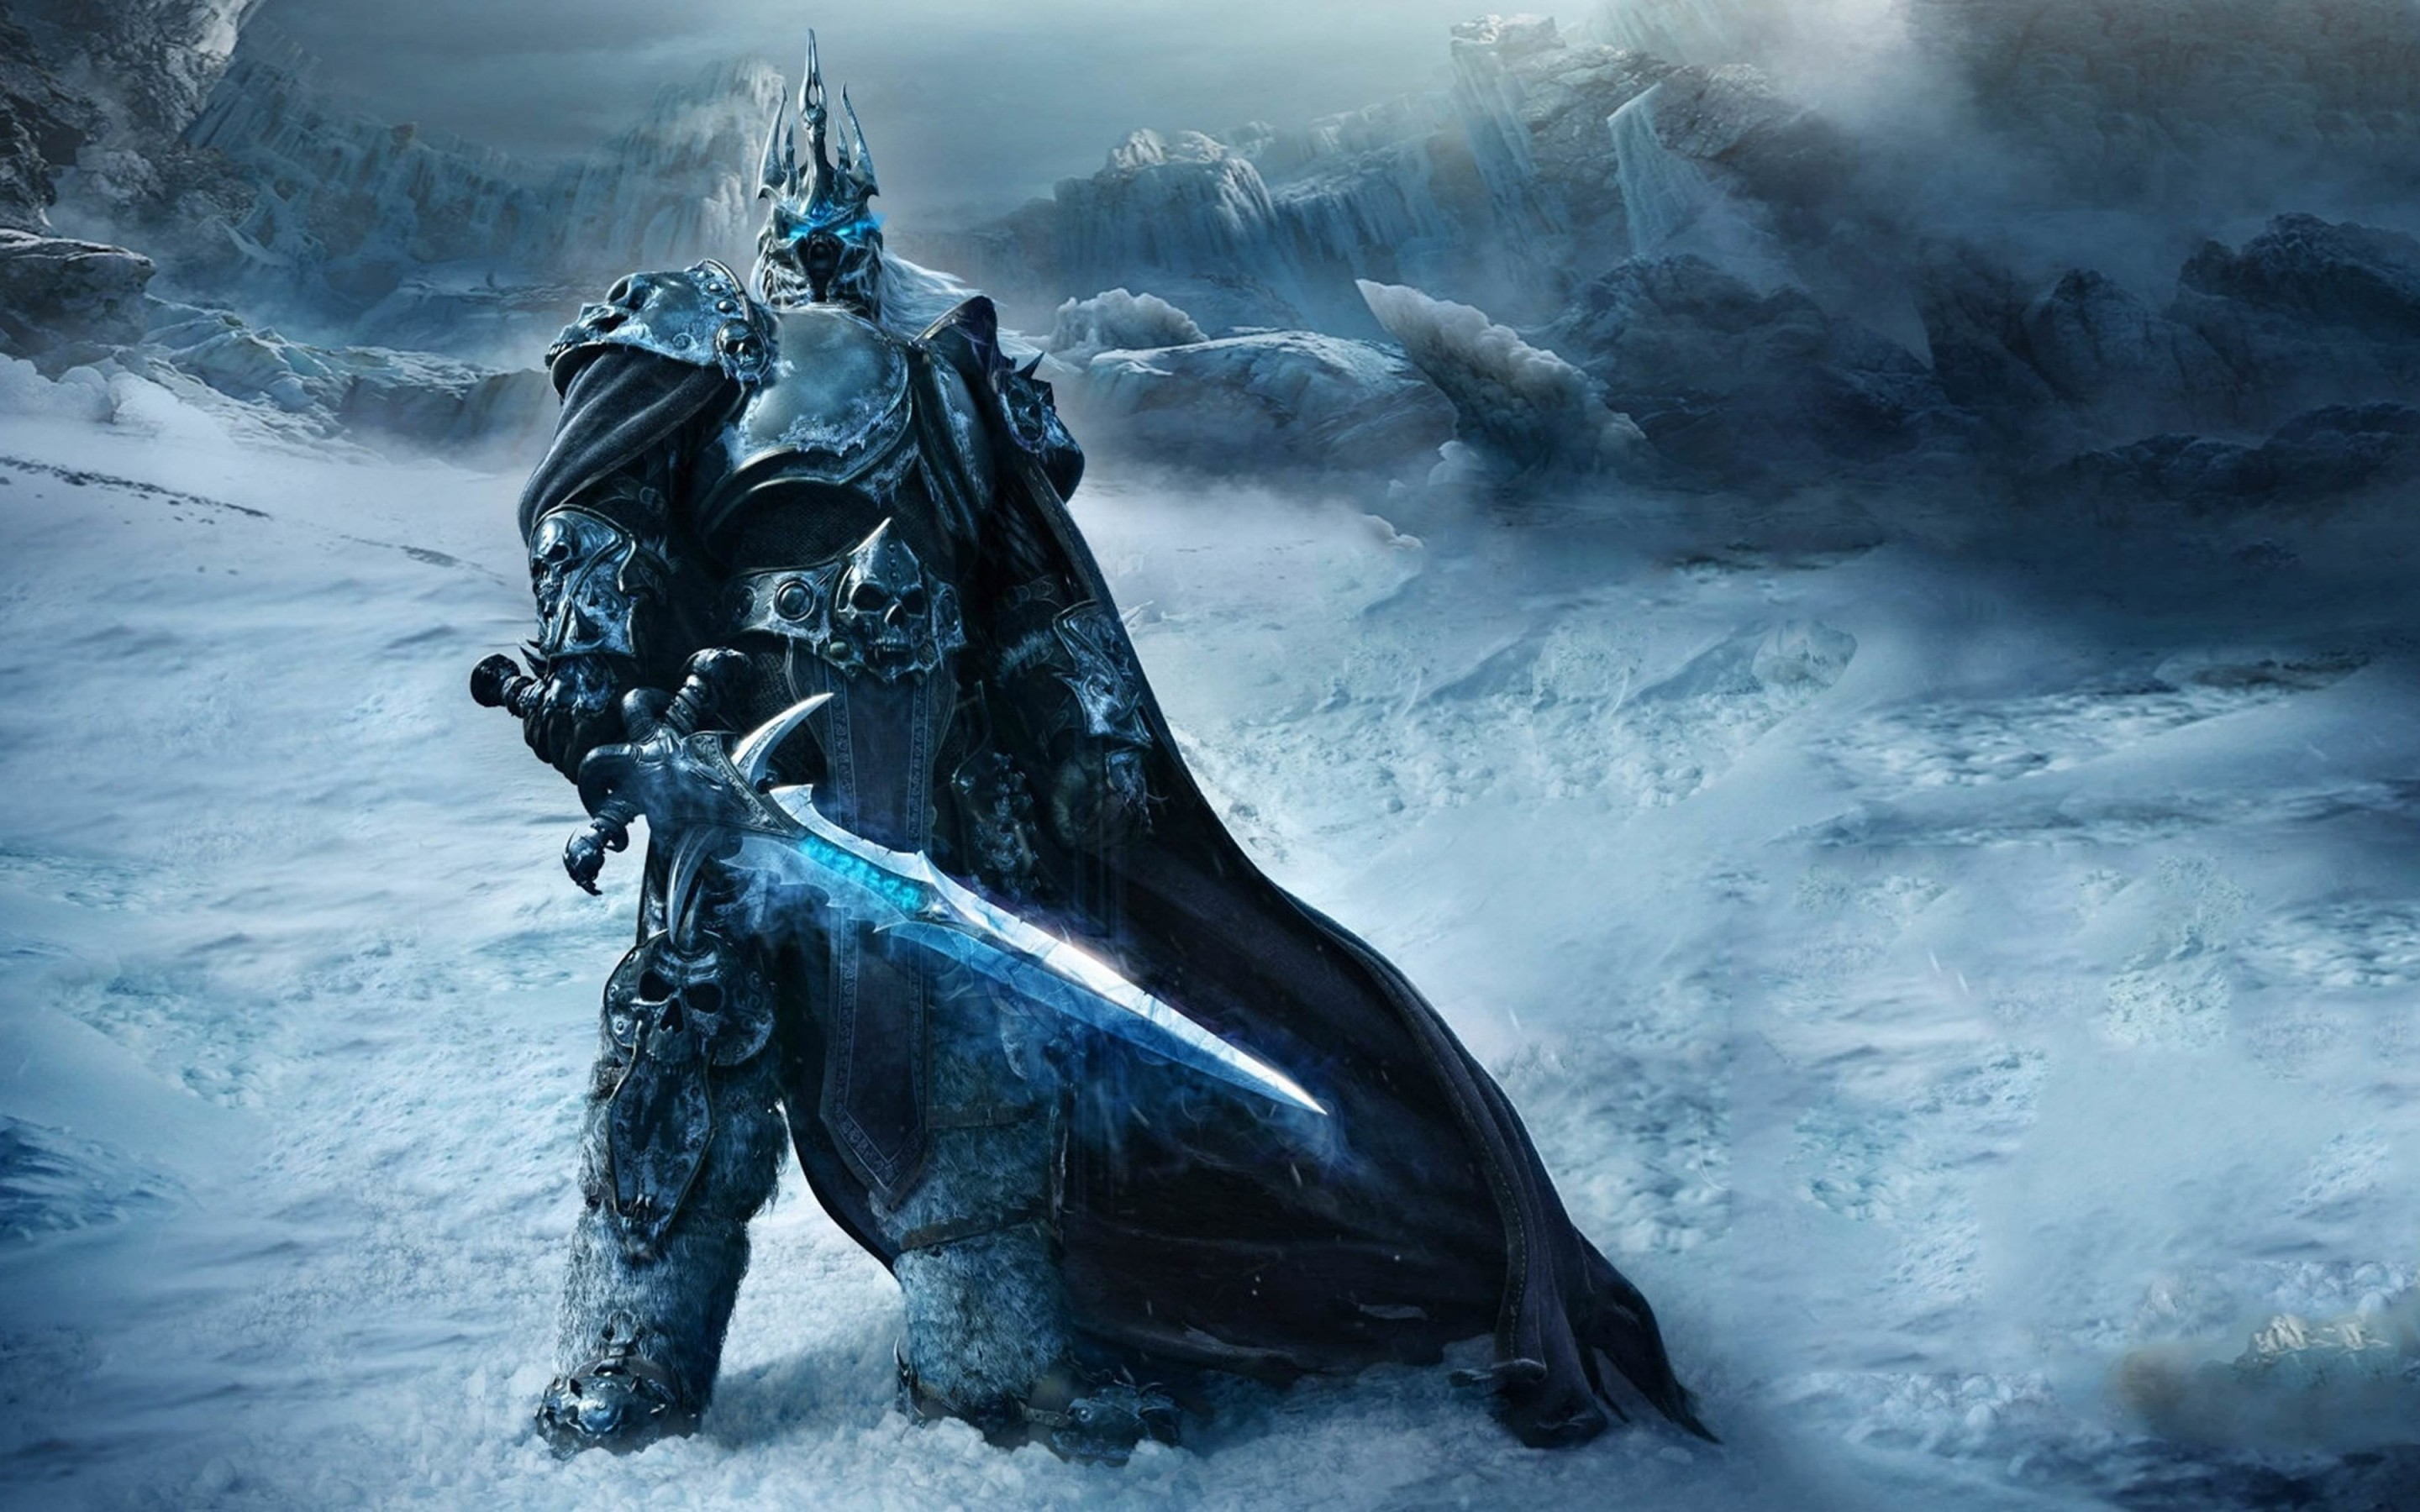 World of Warcraft: Wrath of the Lich King Wallpaper for Desktop 2880x1800